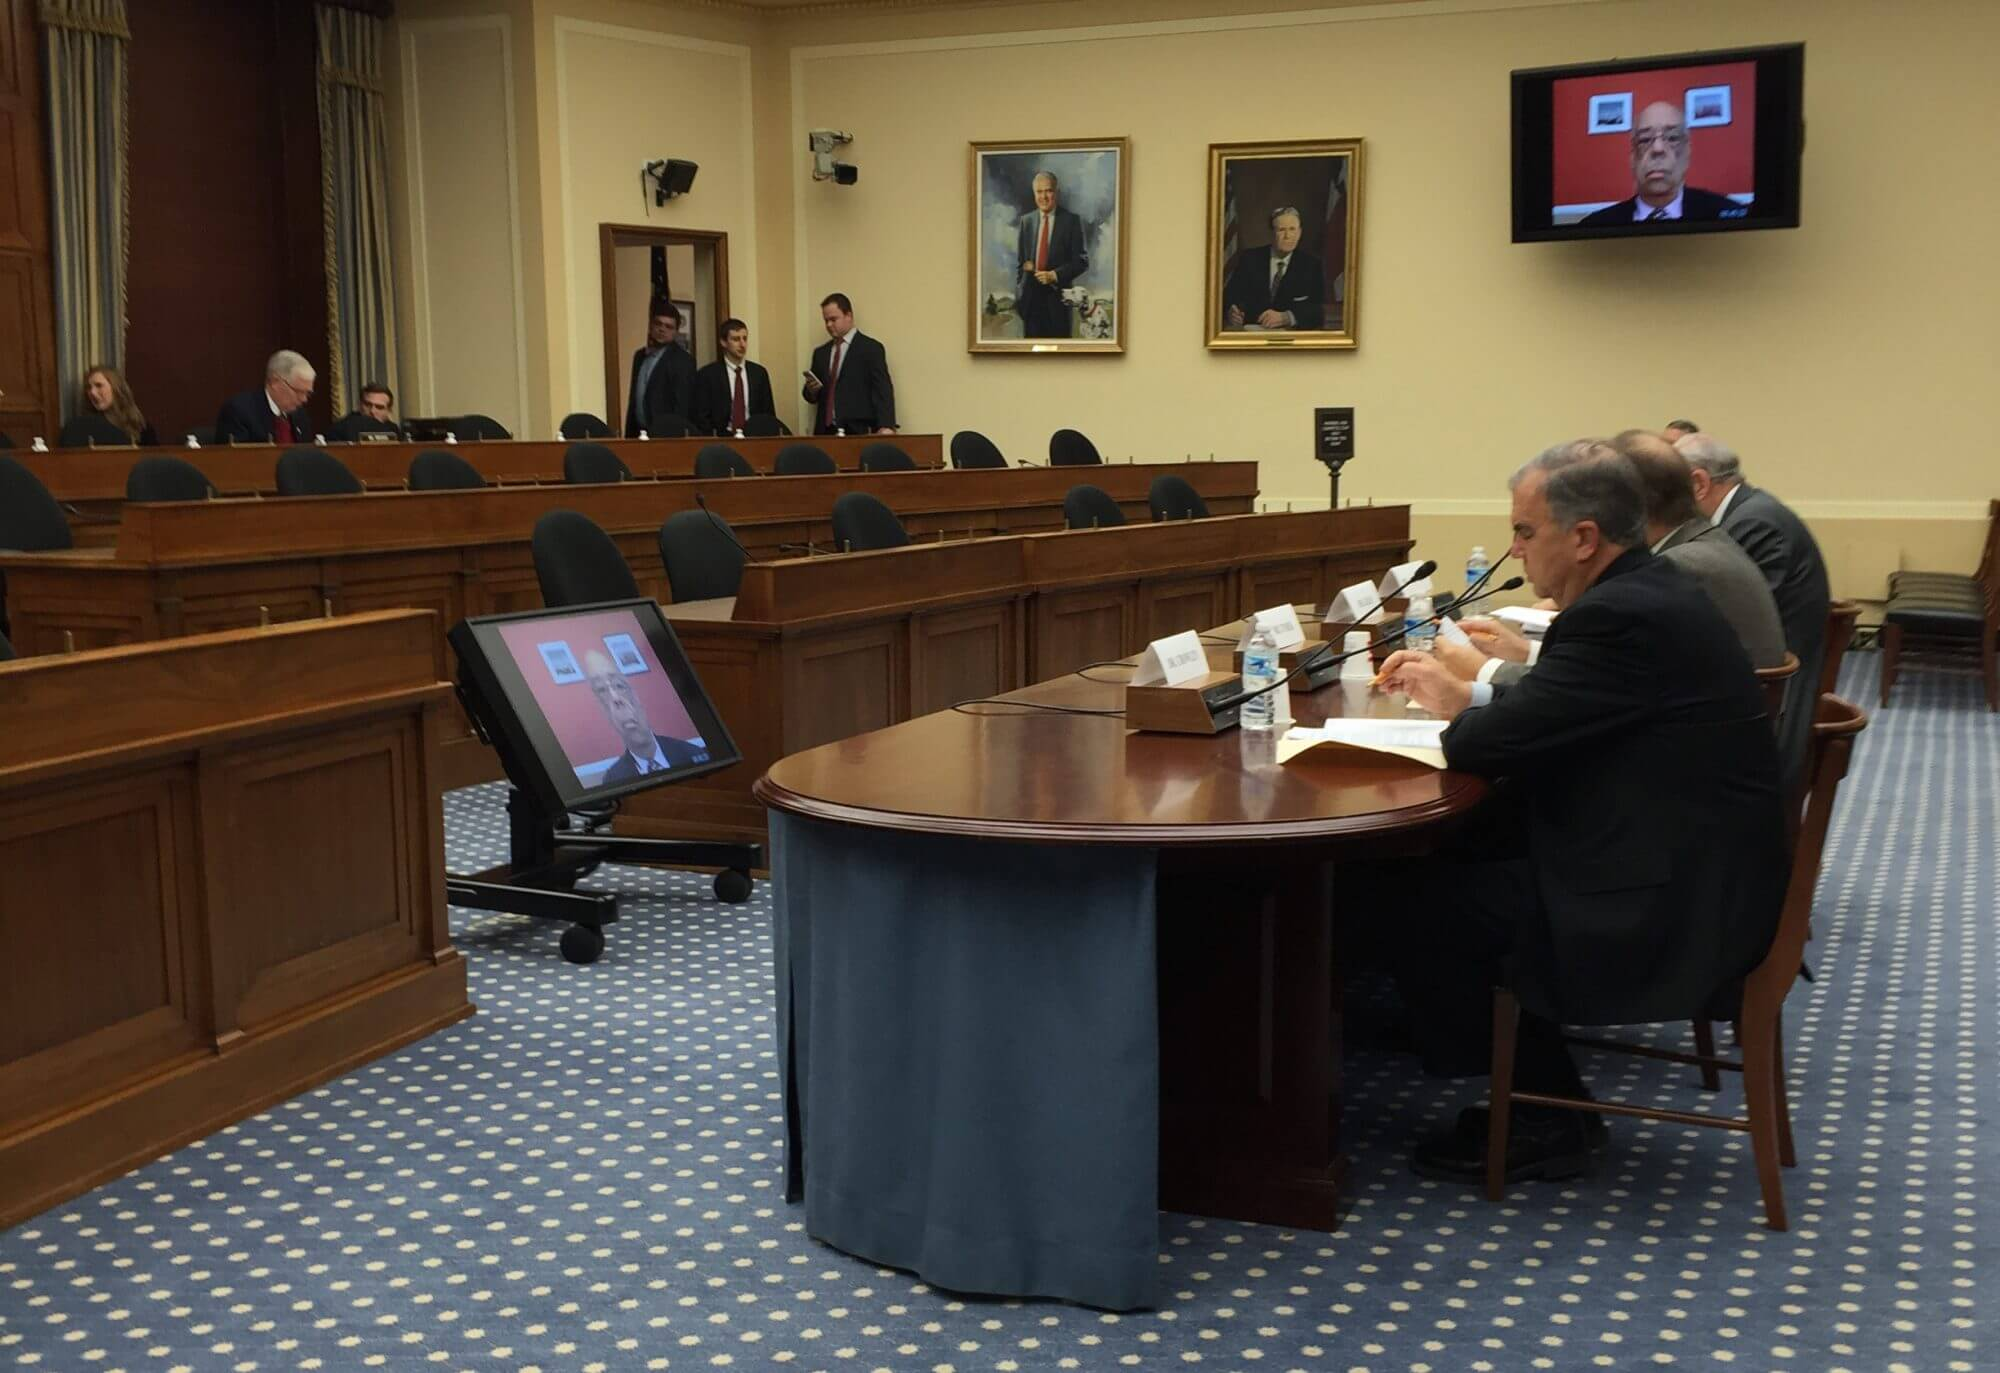 Federal research should be tied to universities and industry, House subcommittee hears